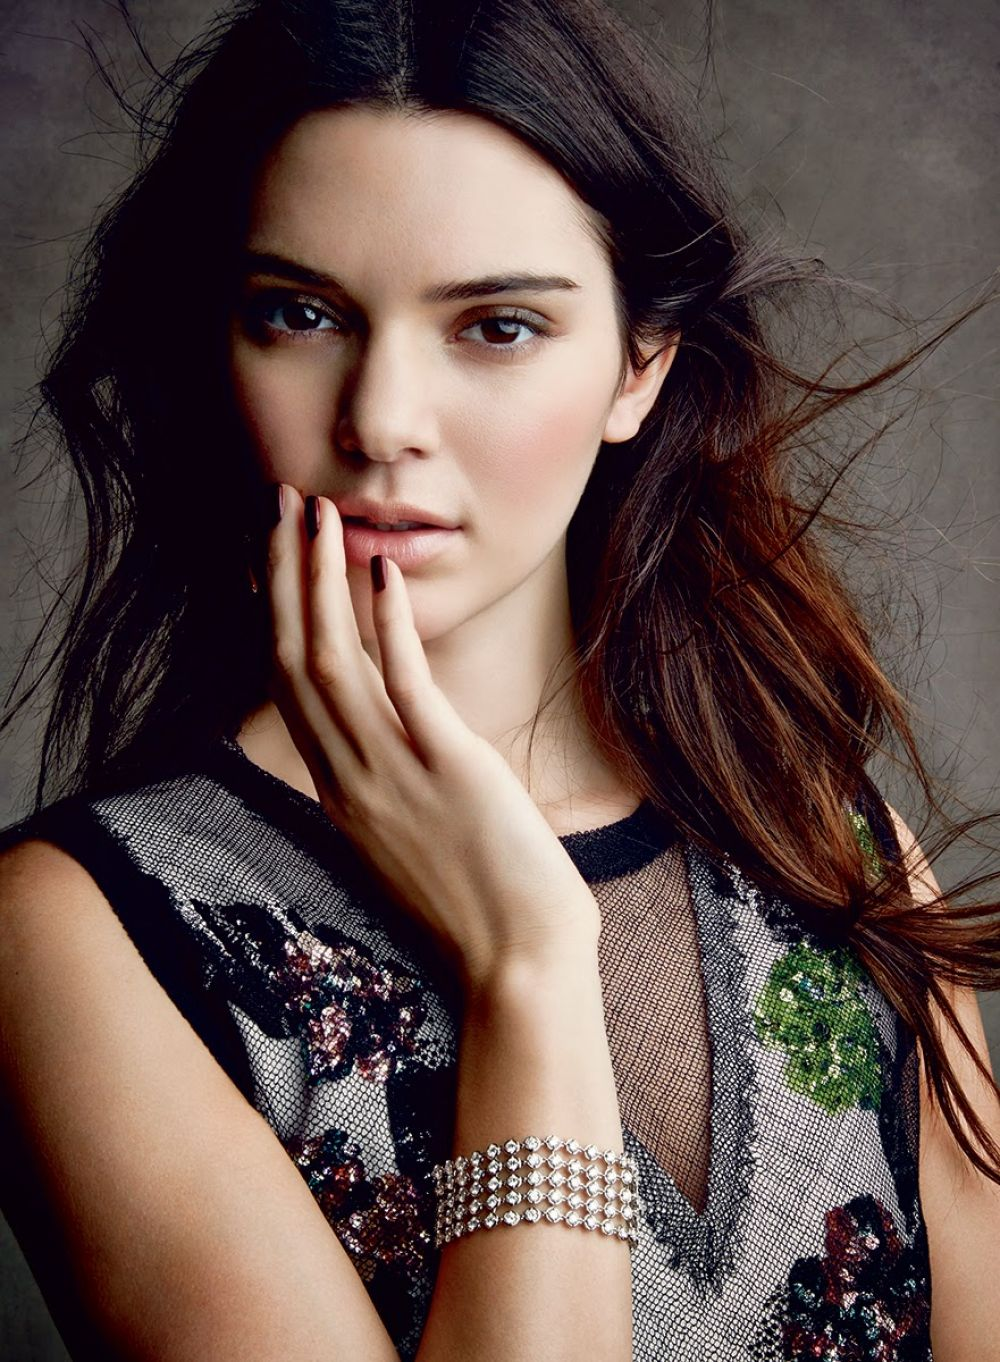 kendall jenner voguem magazine photoshoot by patrick demarchelier 1